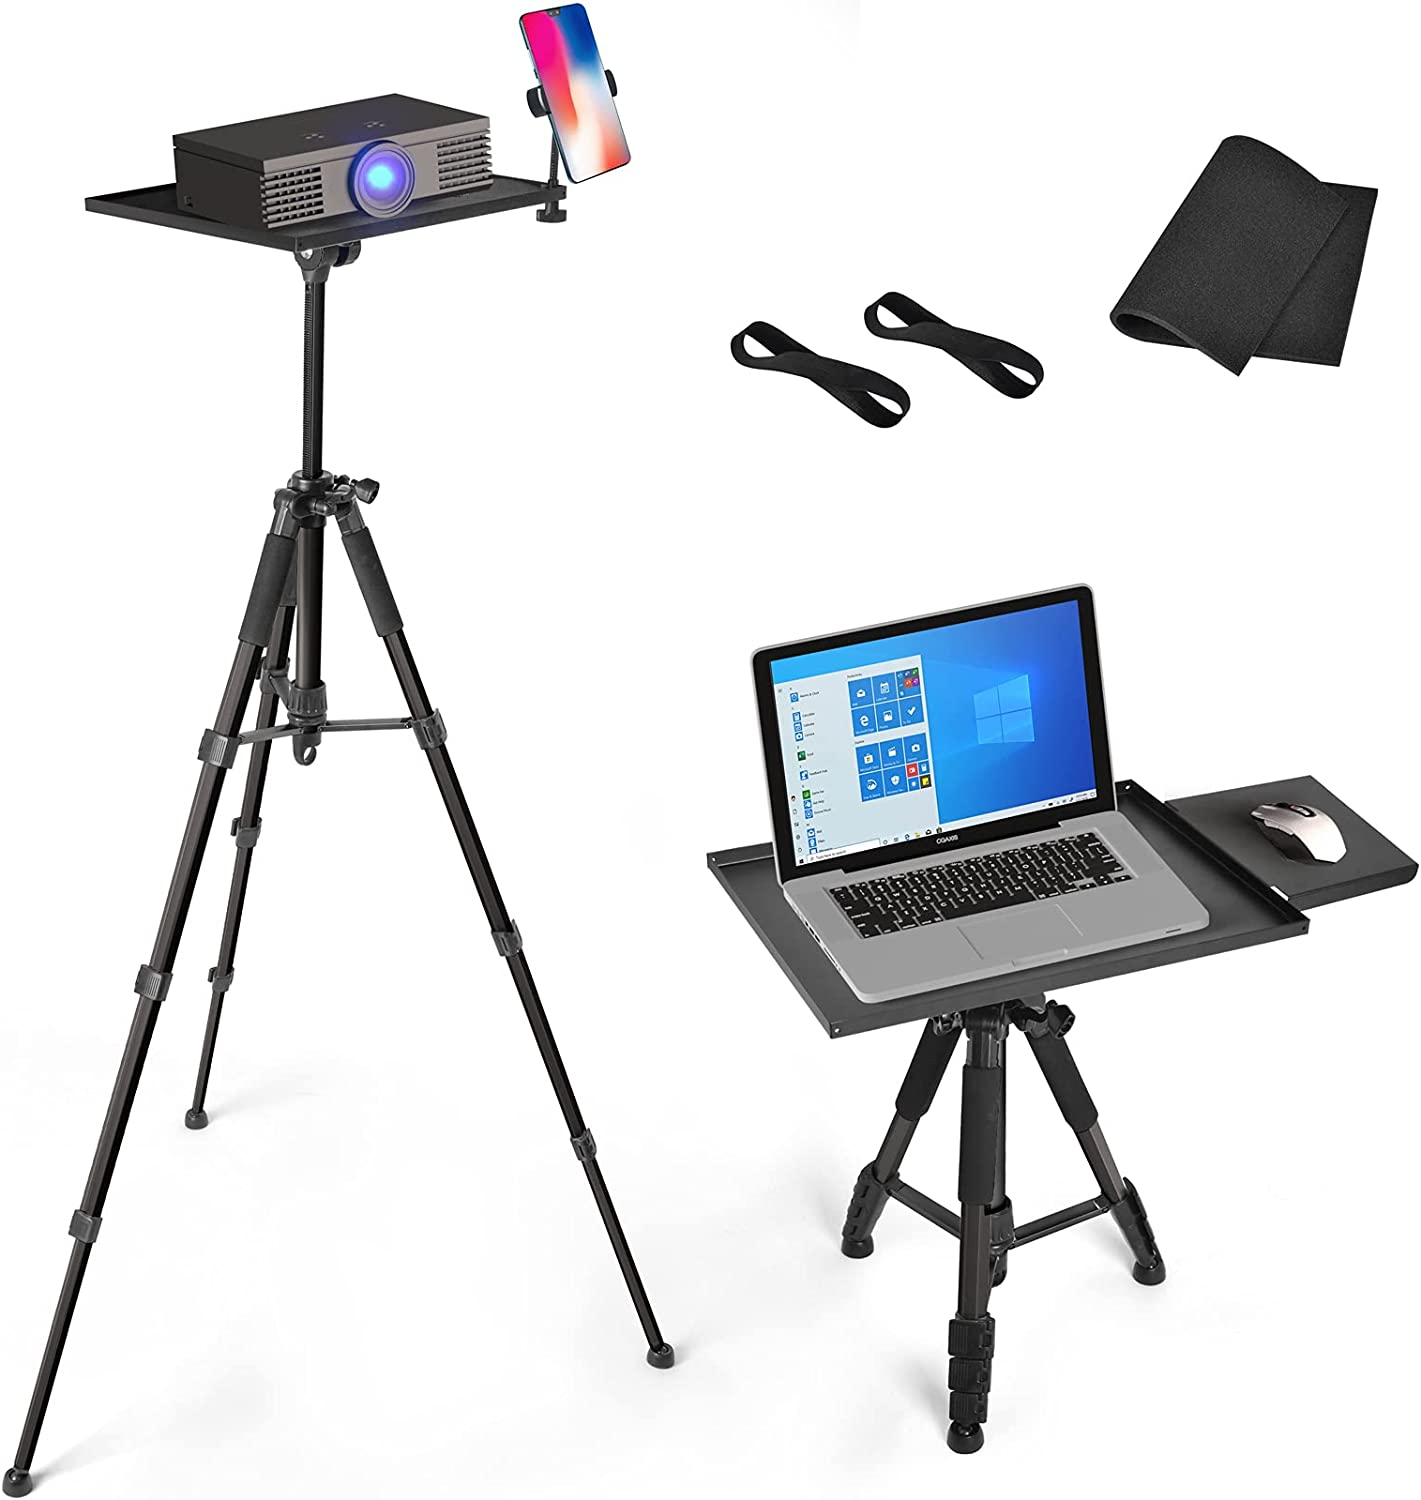 Buy Projector Stand, Laptop Tripod Stand, Projector Tripod Stand ...